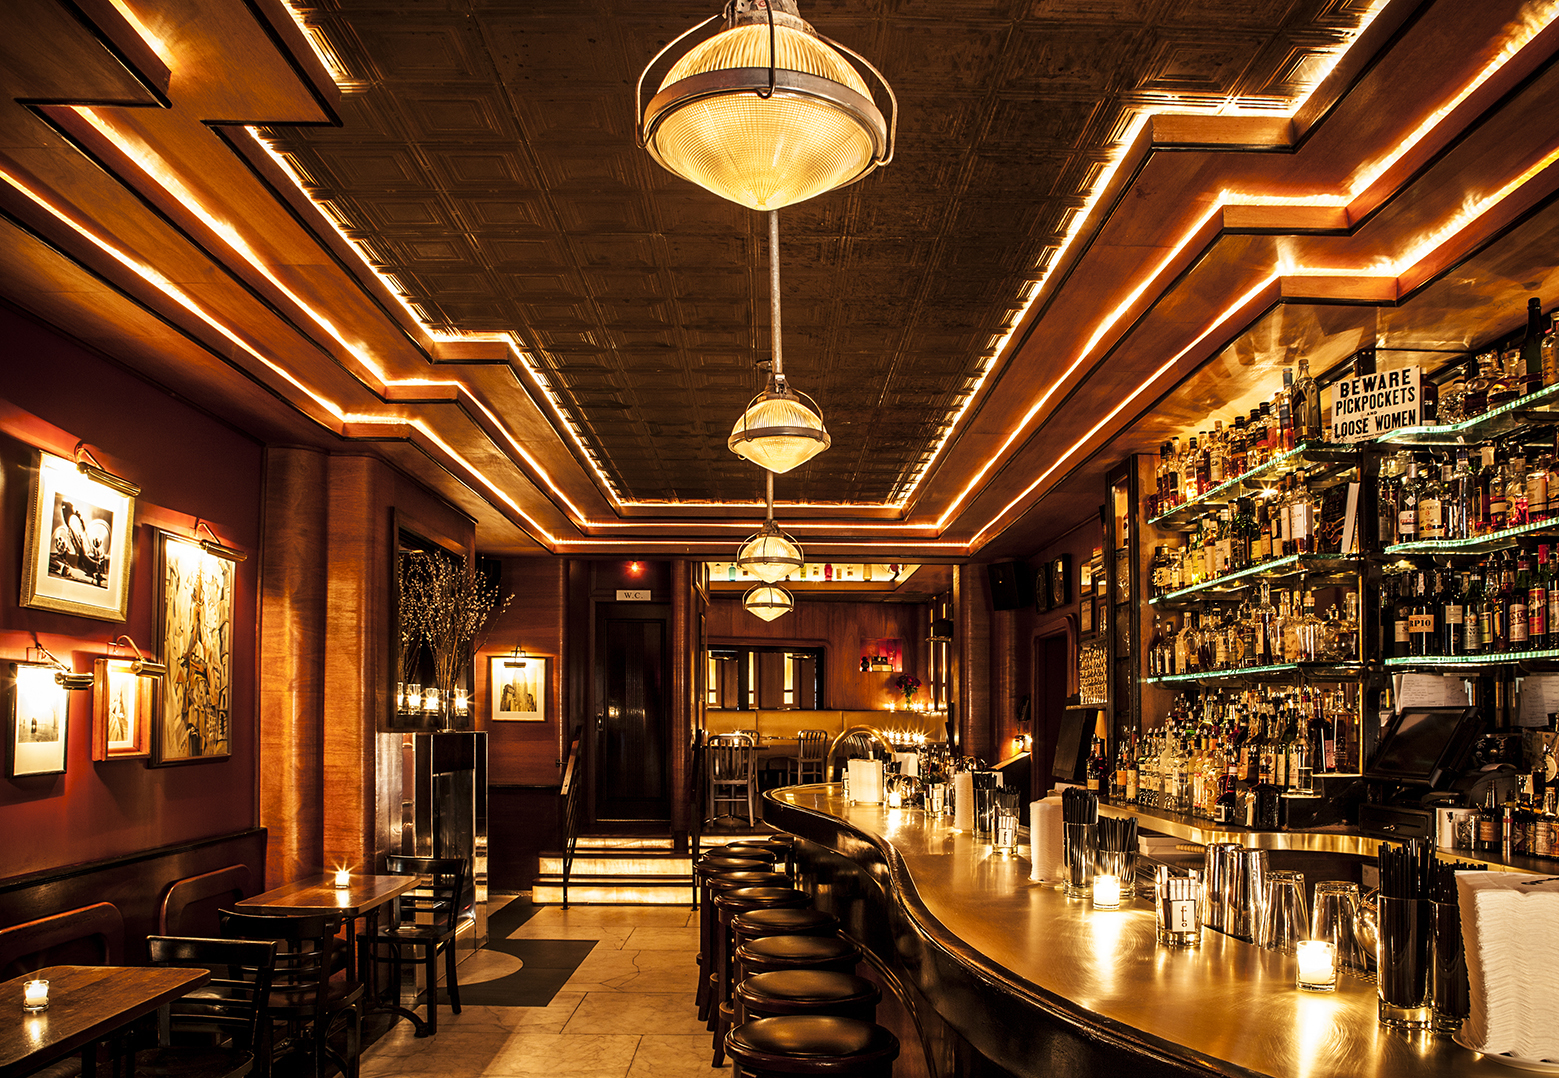 The best bars to go to alone in NYC